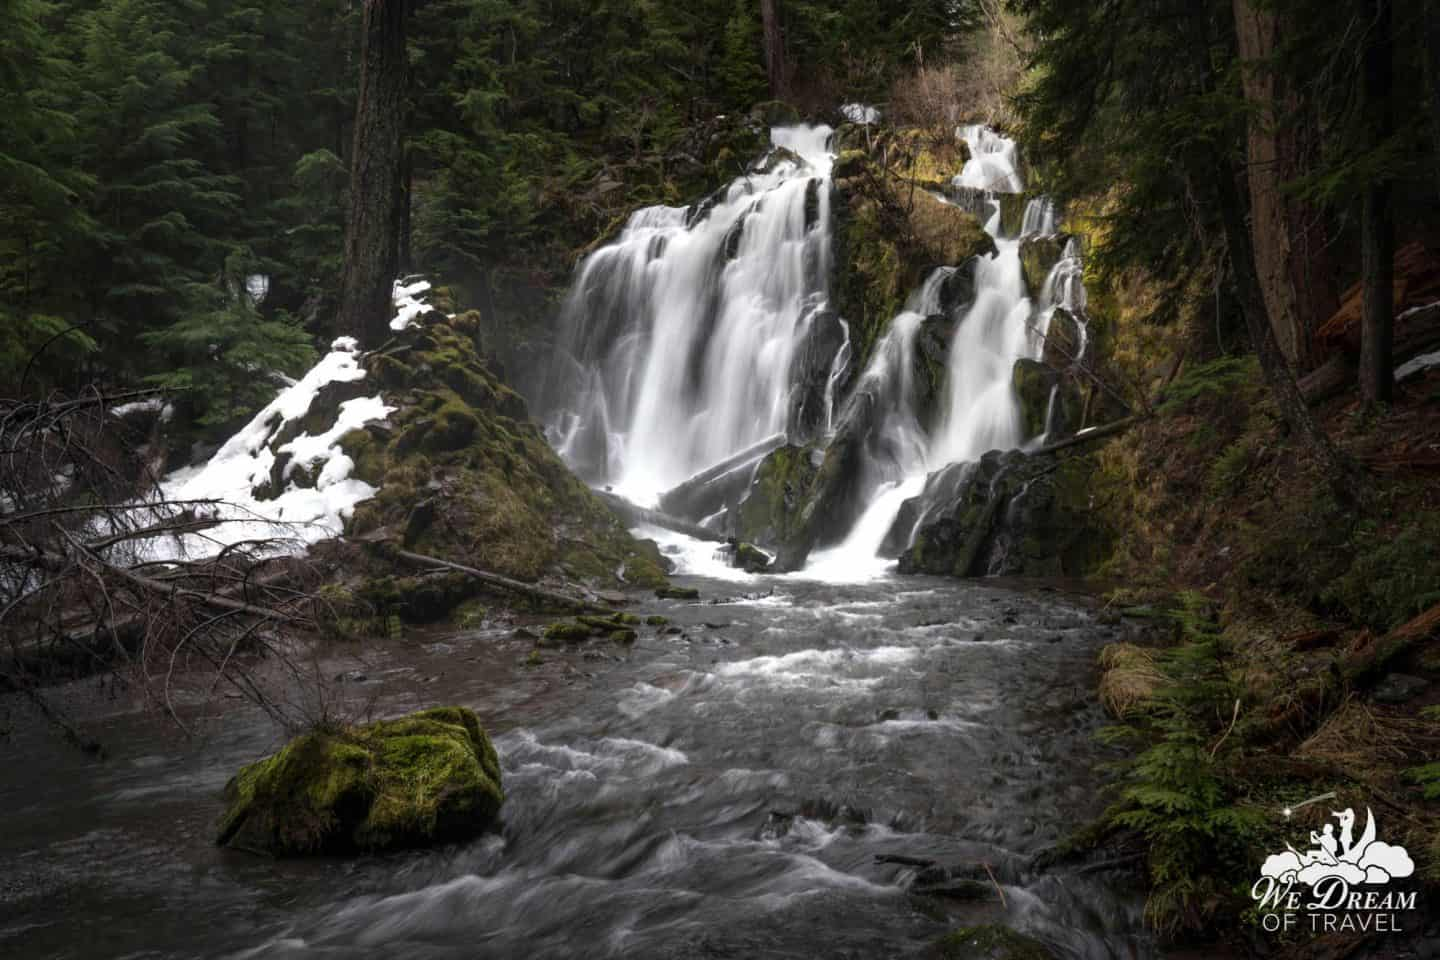 This impressive Oregon waterfall is often neglected, despite its proximity to Crater Lake.